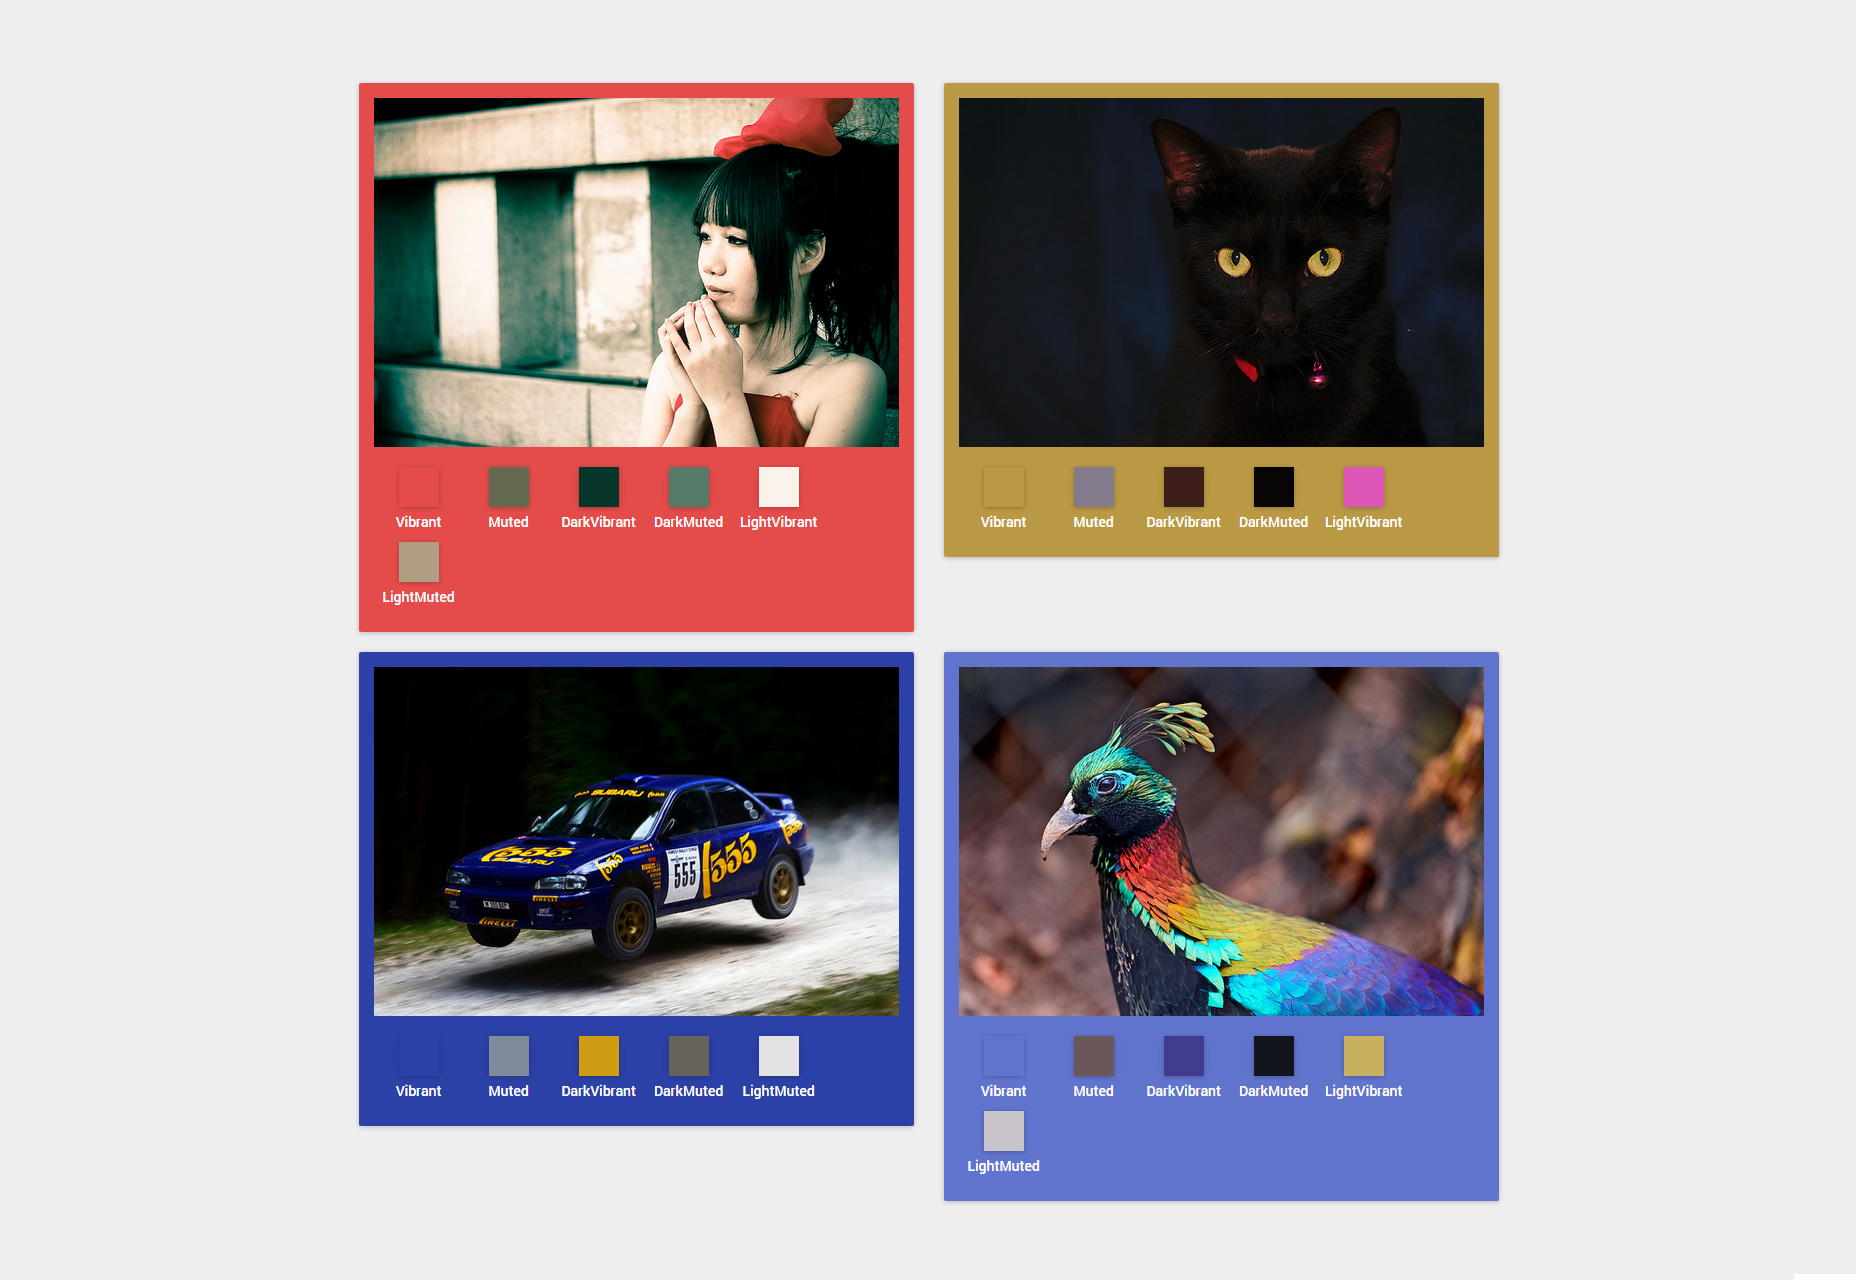 Vibrant.js: Prominent Image Colours JavaScript Extractor